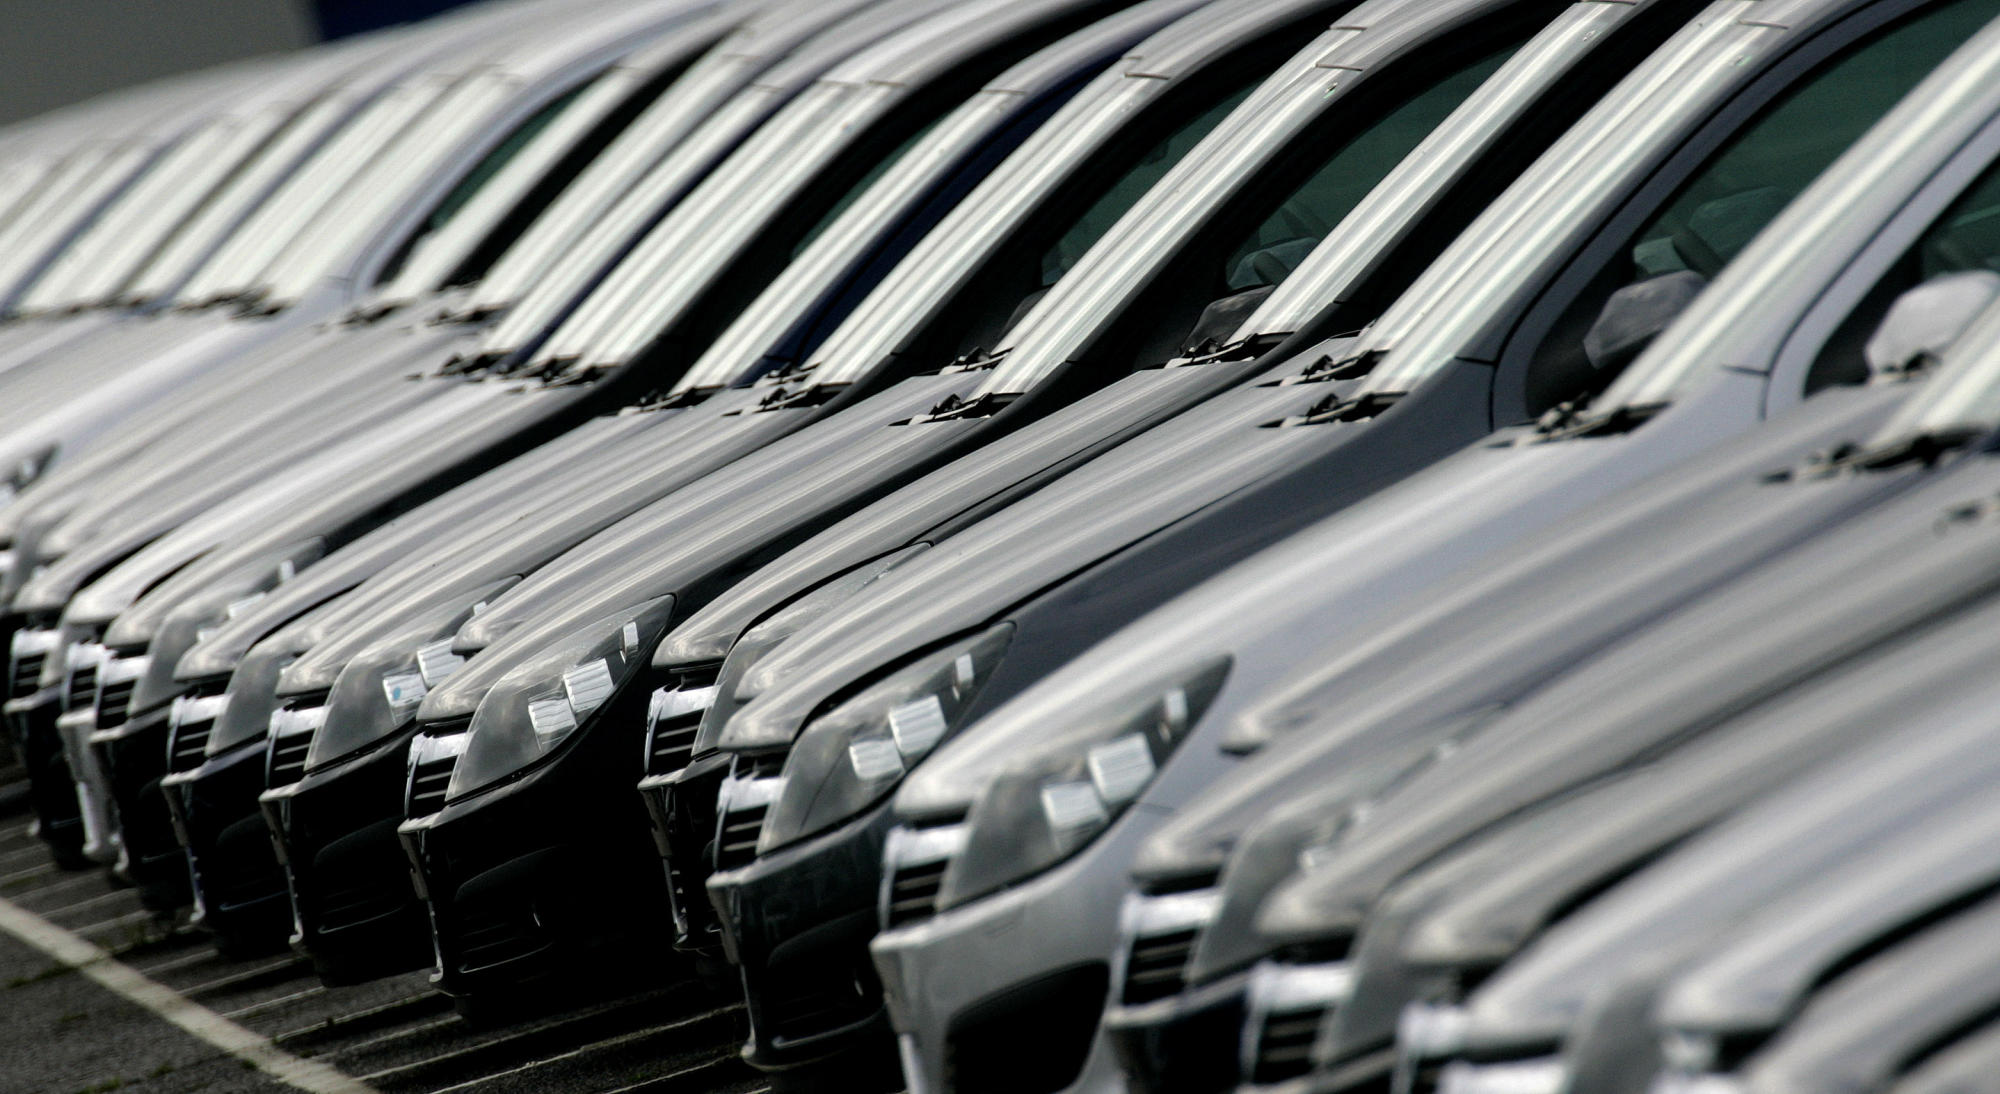 Thousands of jobs at risk as Astra factory faces closure